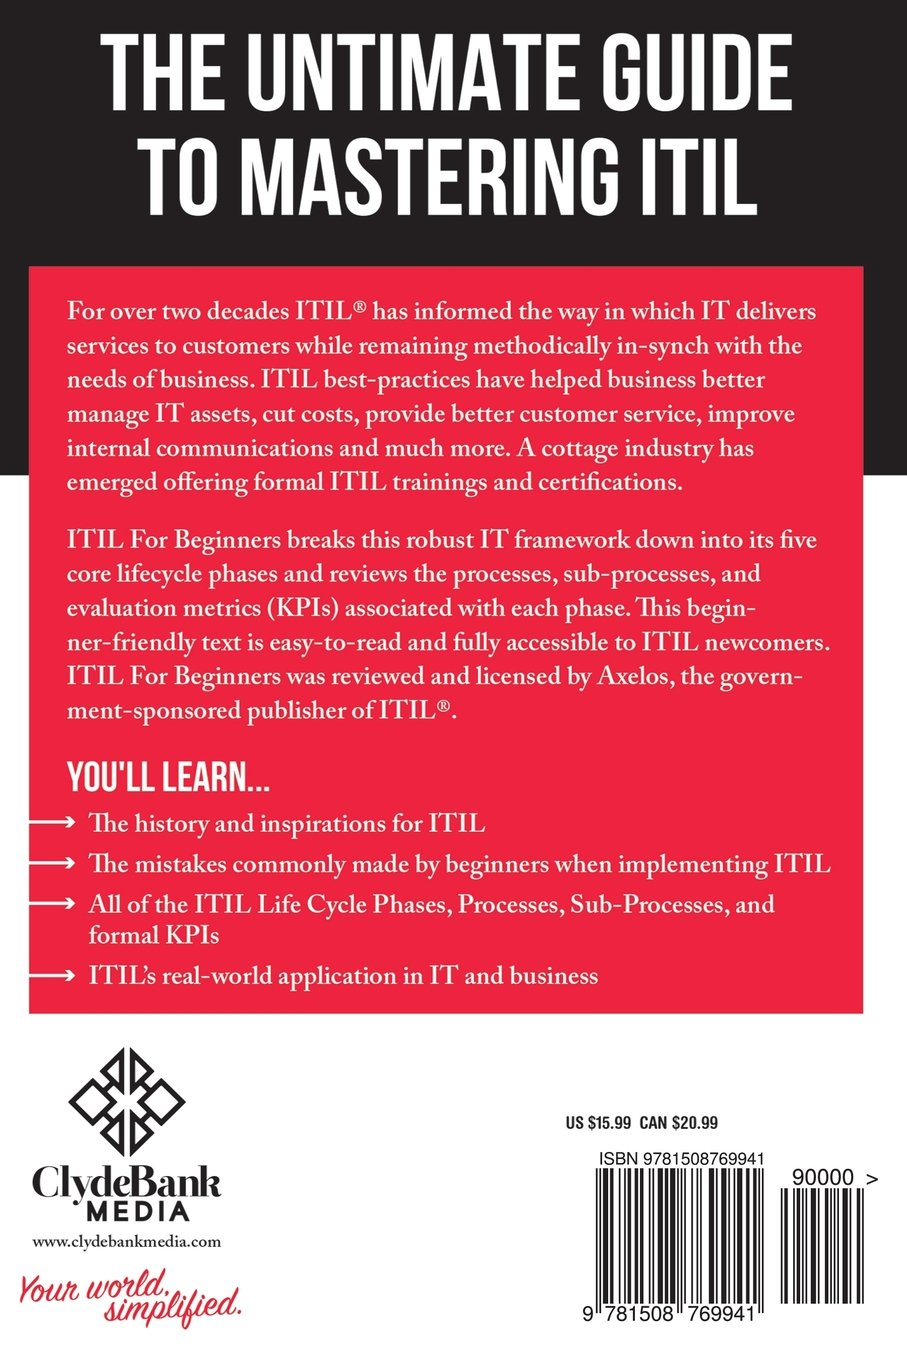 Itil for beginners the complete beginners guide to itil amazon itil for beginners the complete beginners guide to itil amazon clydebank technology 9781508769941 books 1betcityfo Images